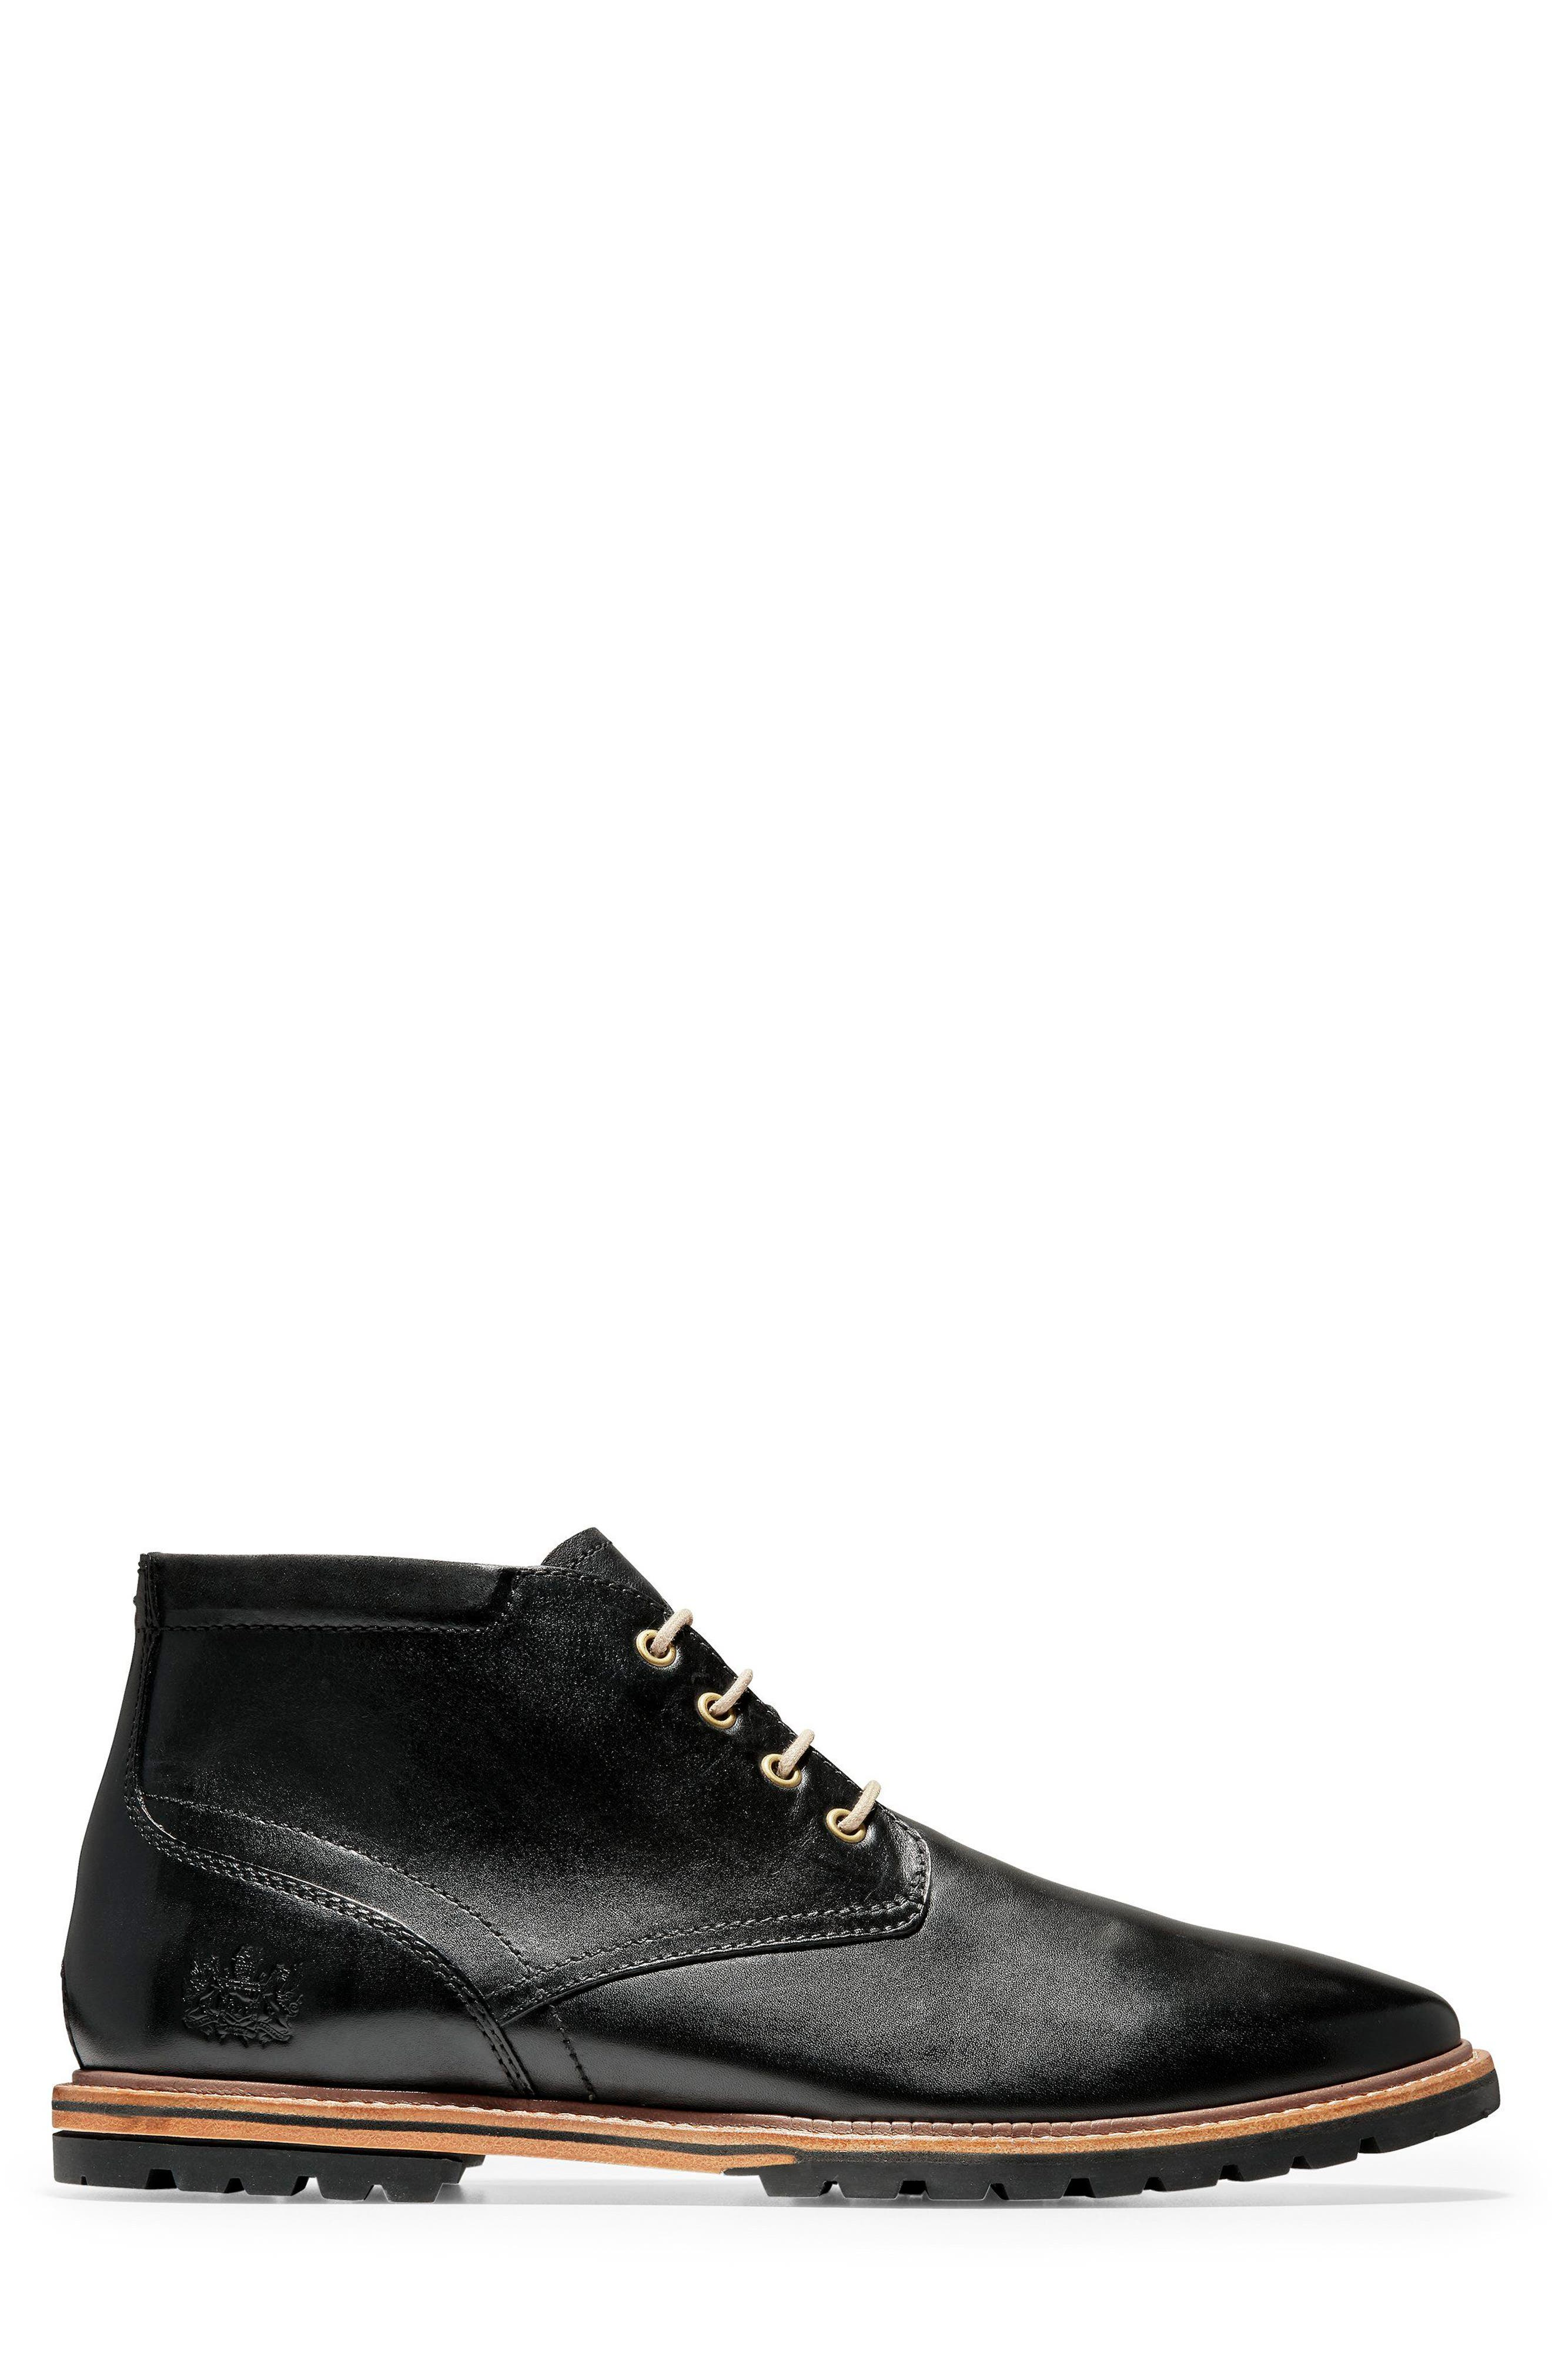 COLE HAAN, Raymond Grand Chukka Boot, Alternate thumbnail 3, color, BLACK LEATHER